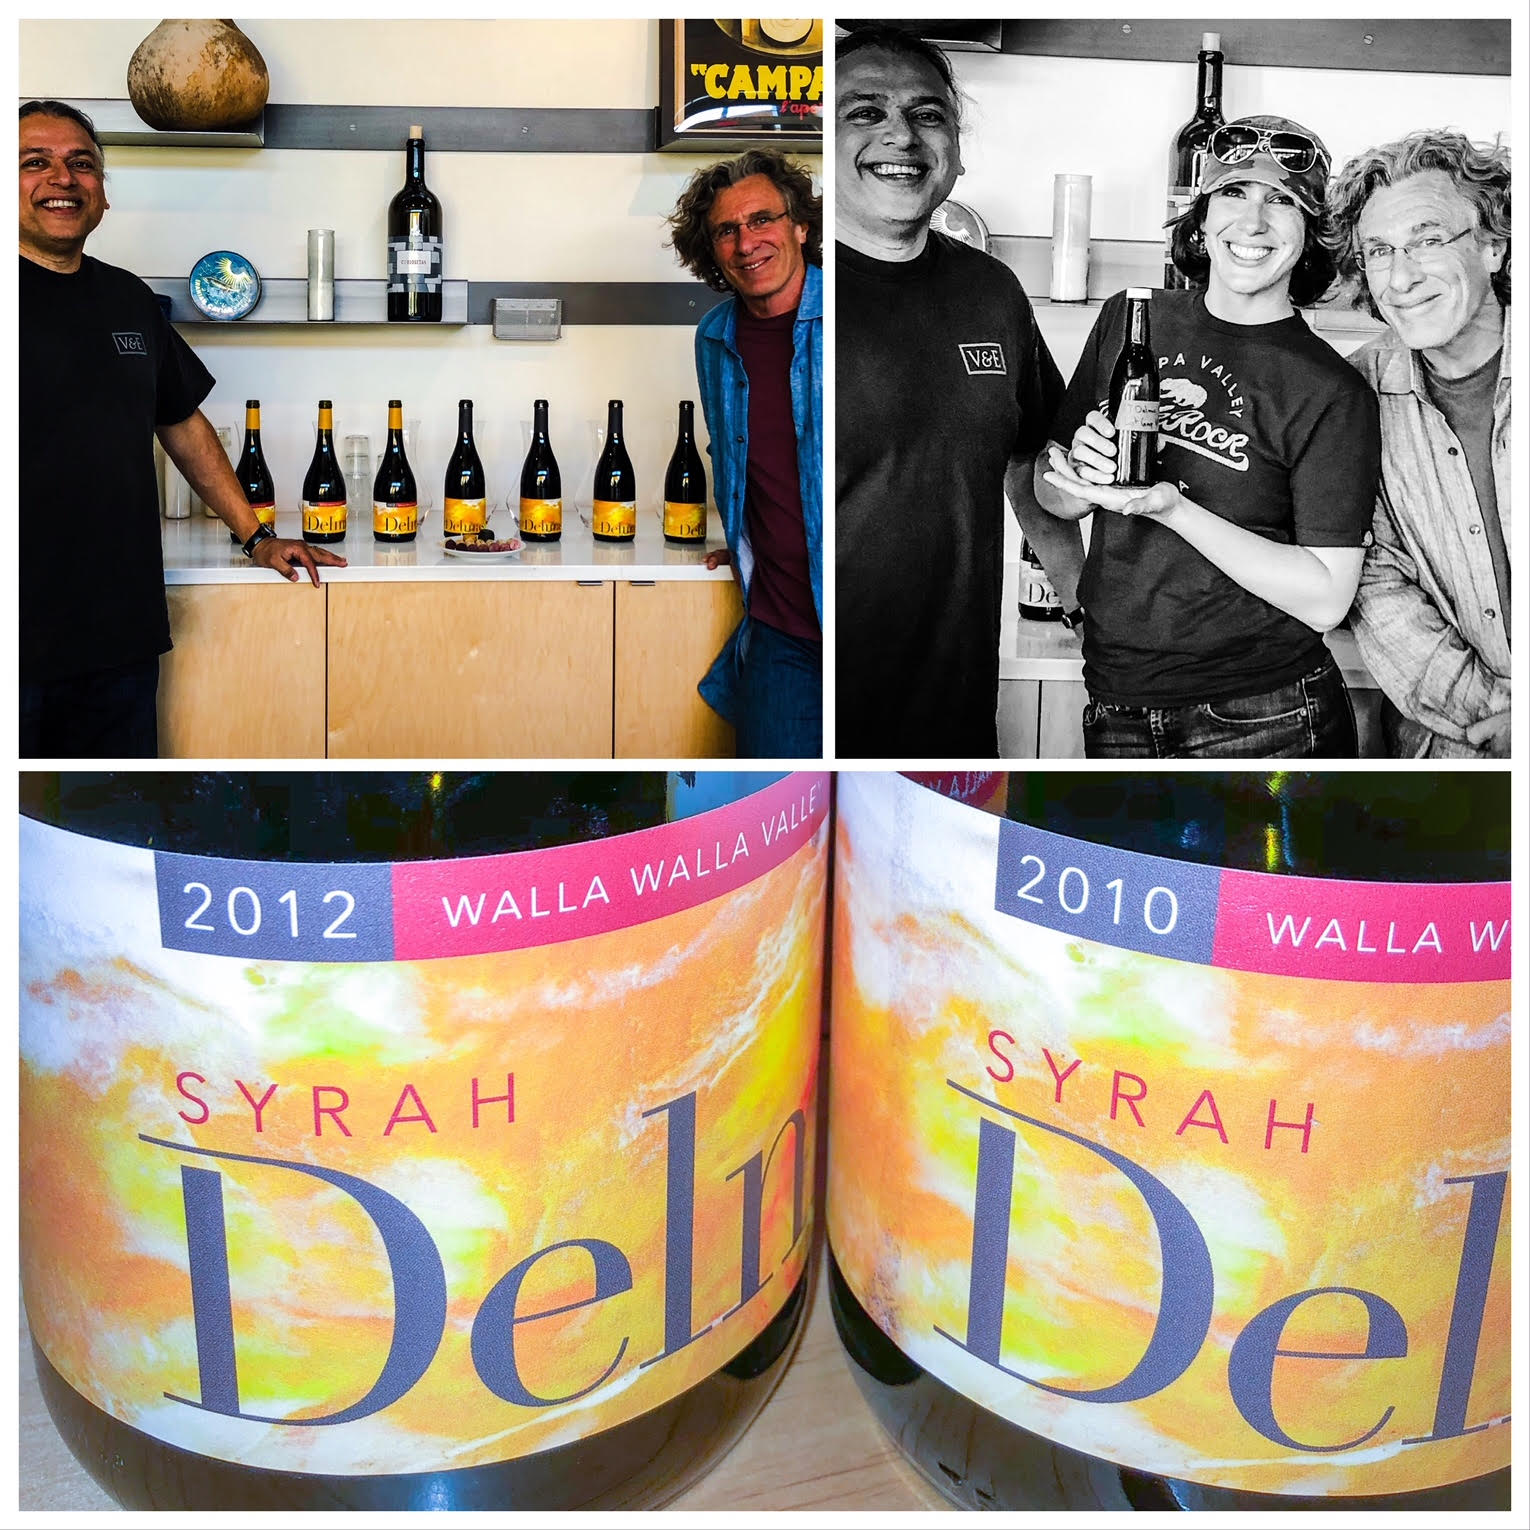 It was a wonderful day trying a complete vertical of the premier Washington wines, the Delmas Syrah.